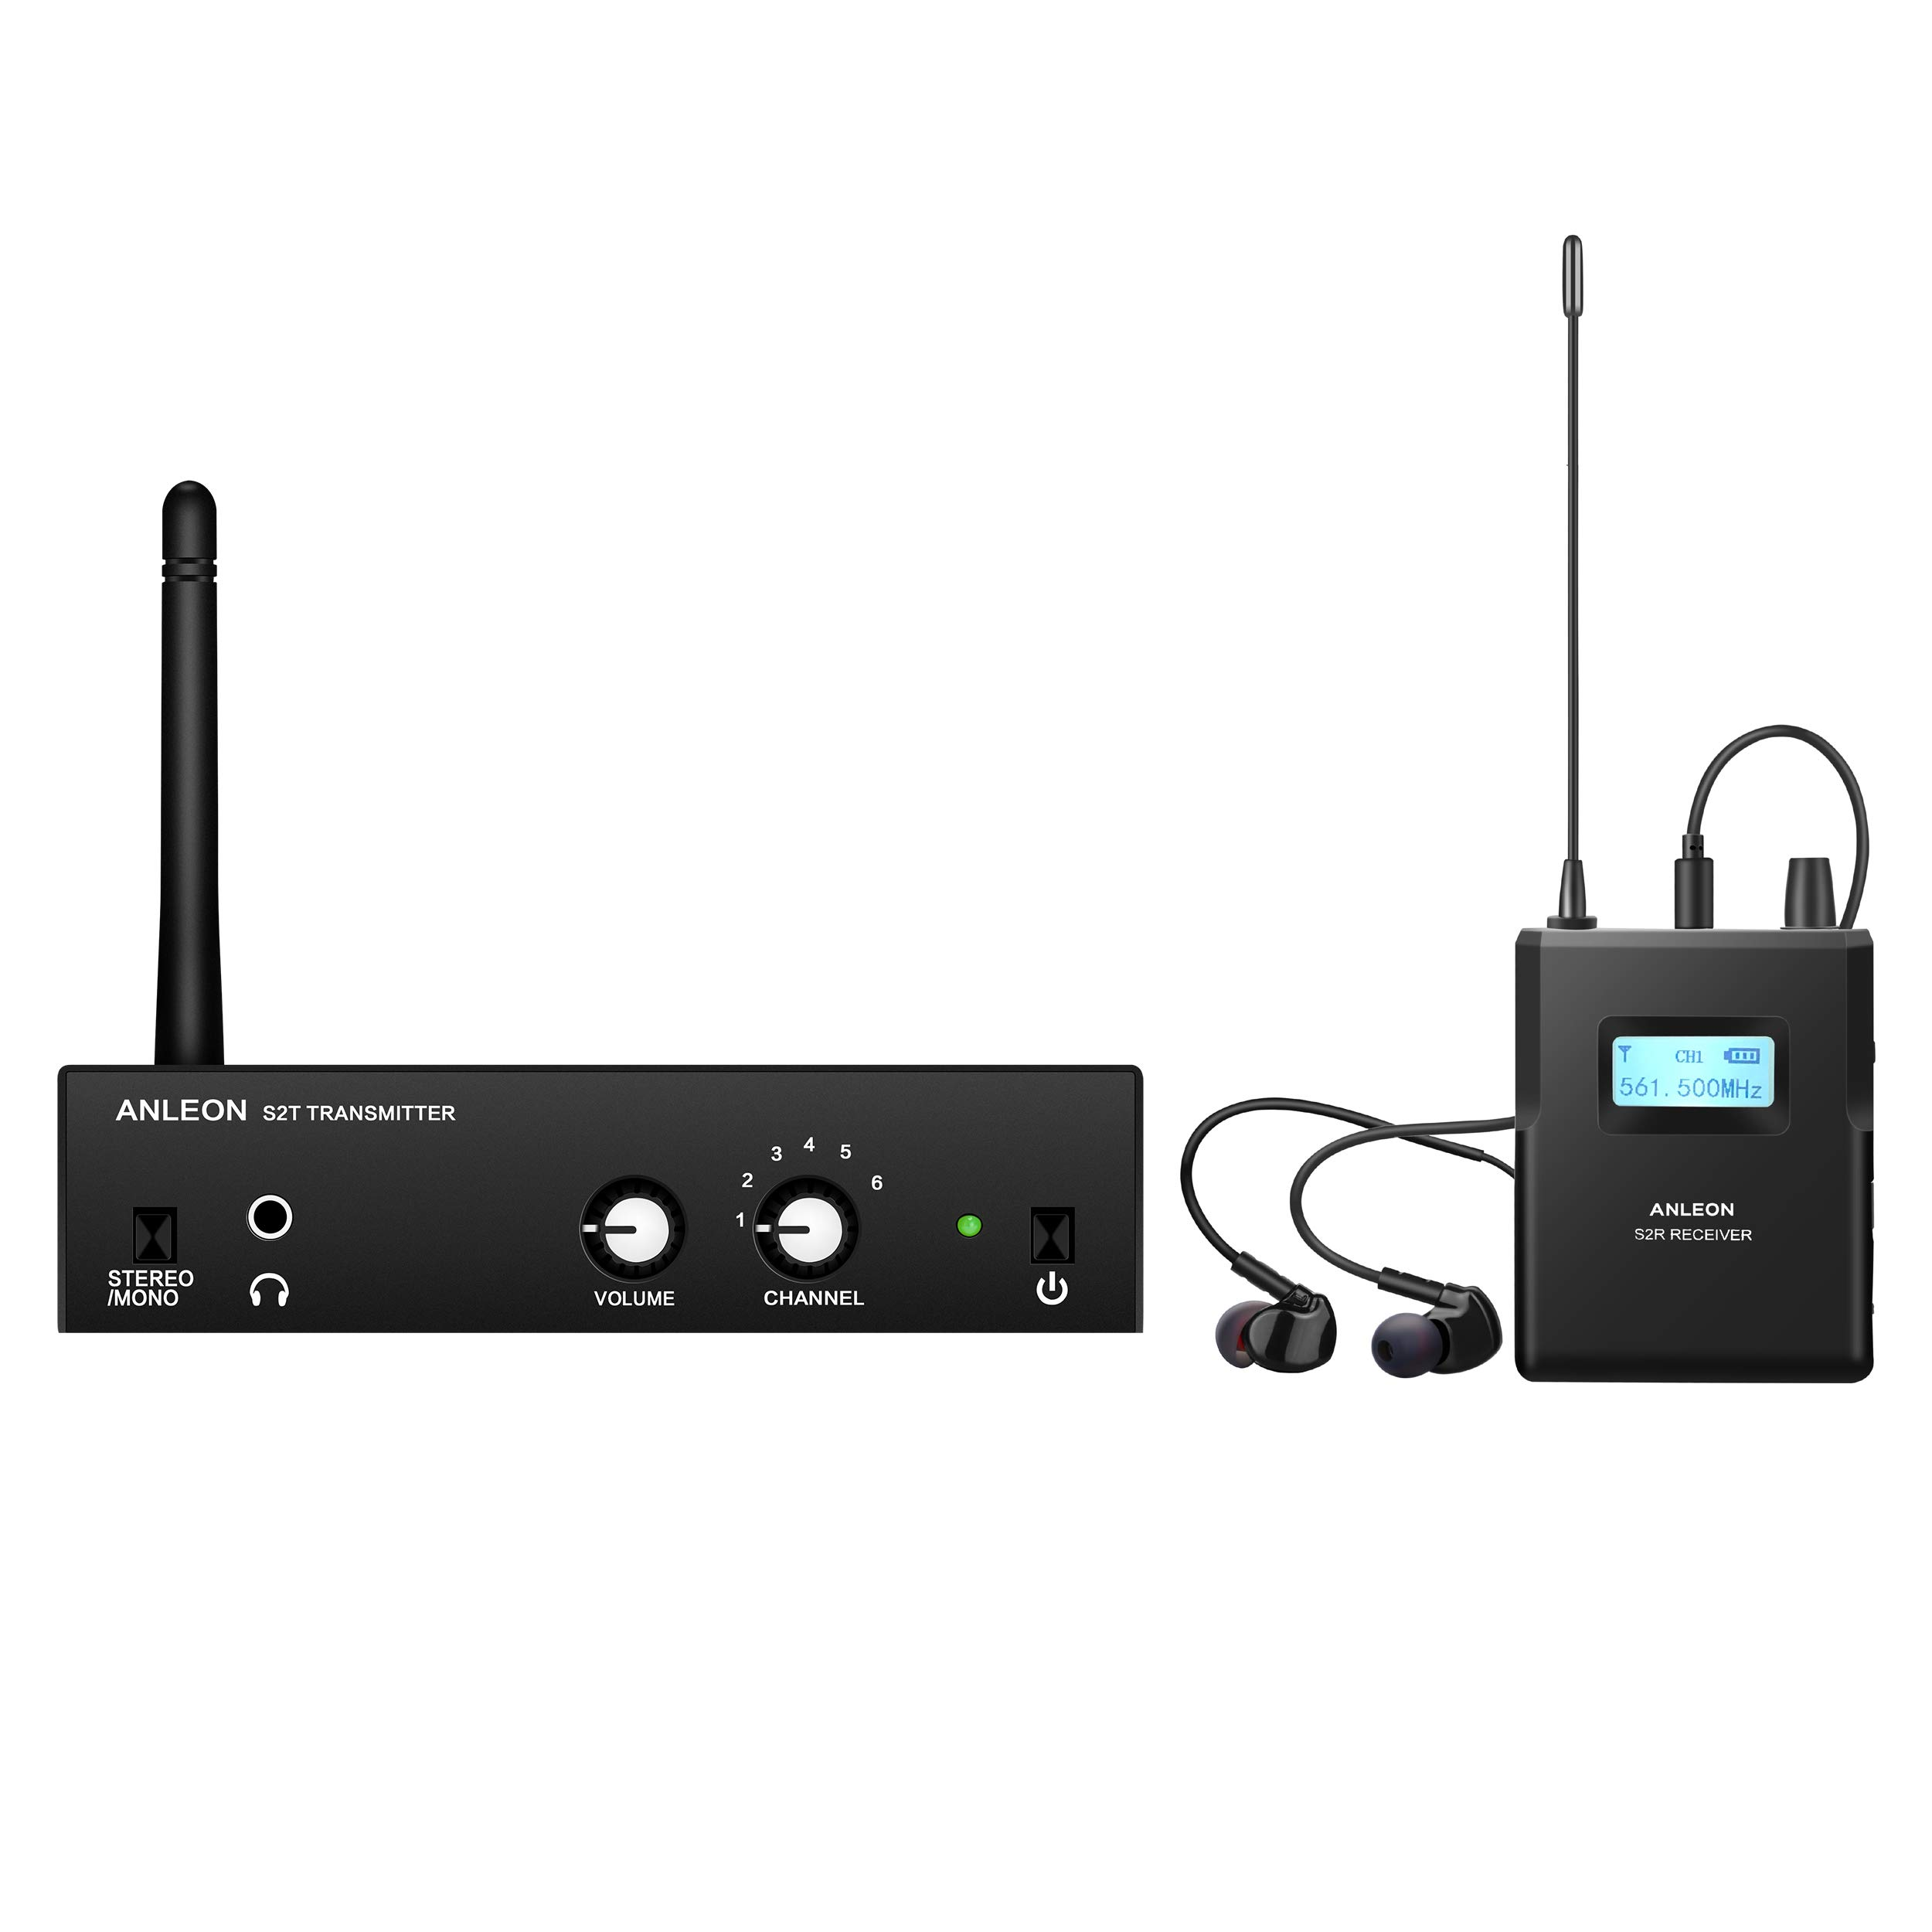 ANLEON S2 Wireless In-ear Monitor System UHF (561-568MHz, Transmitter and Receiver)